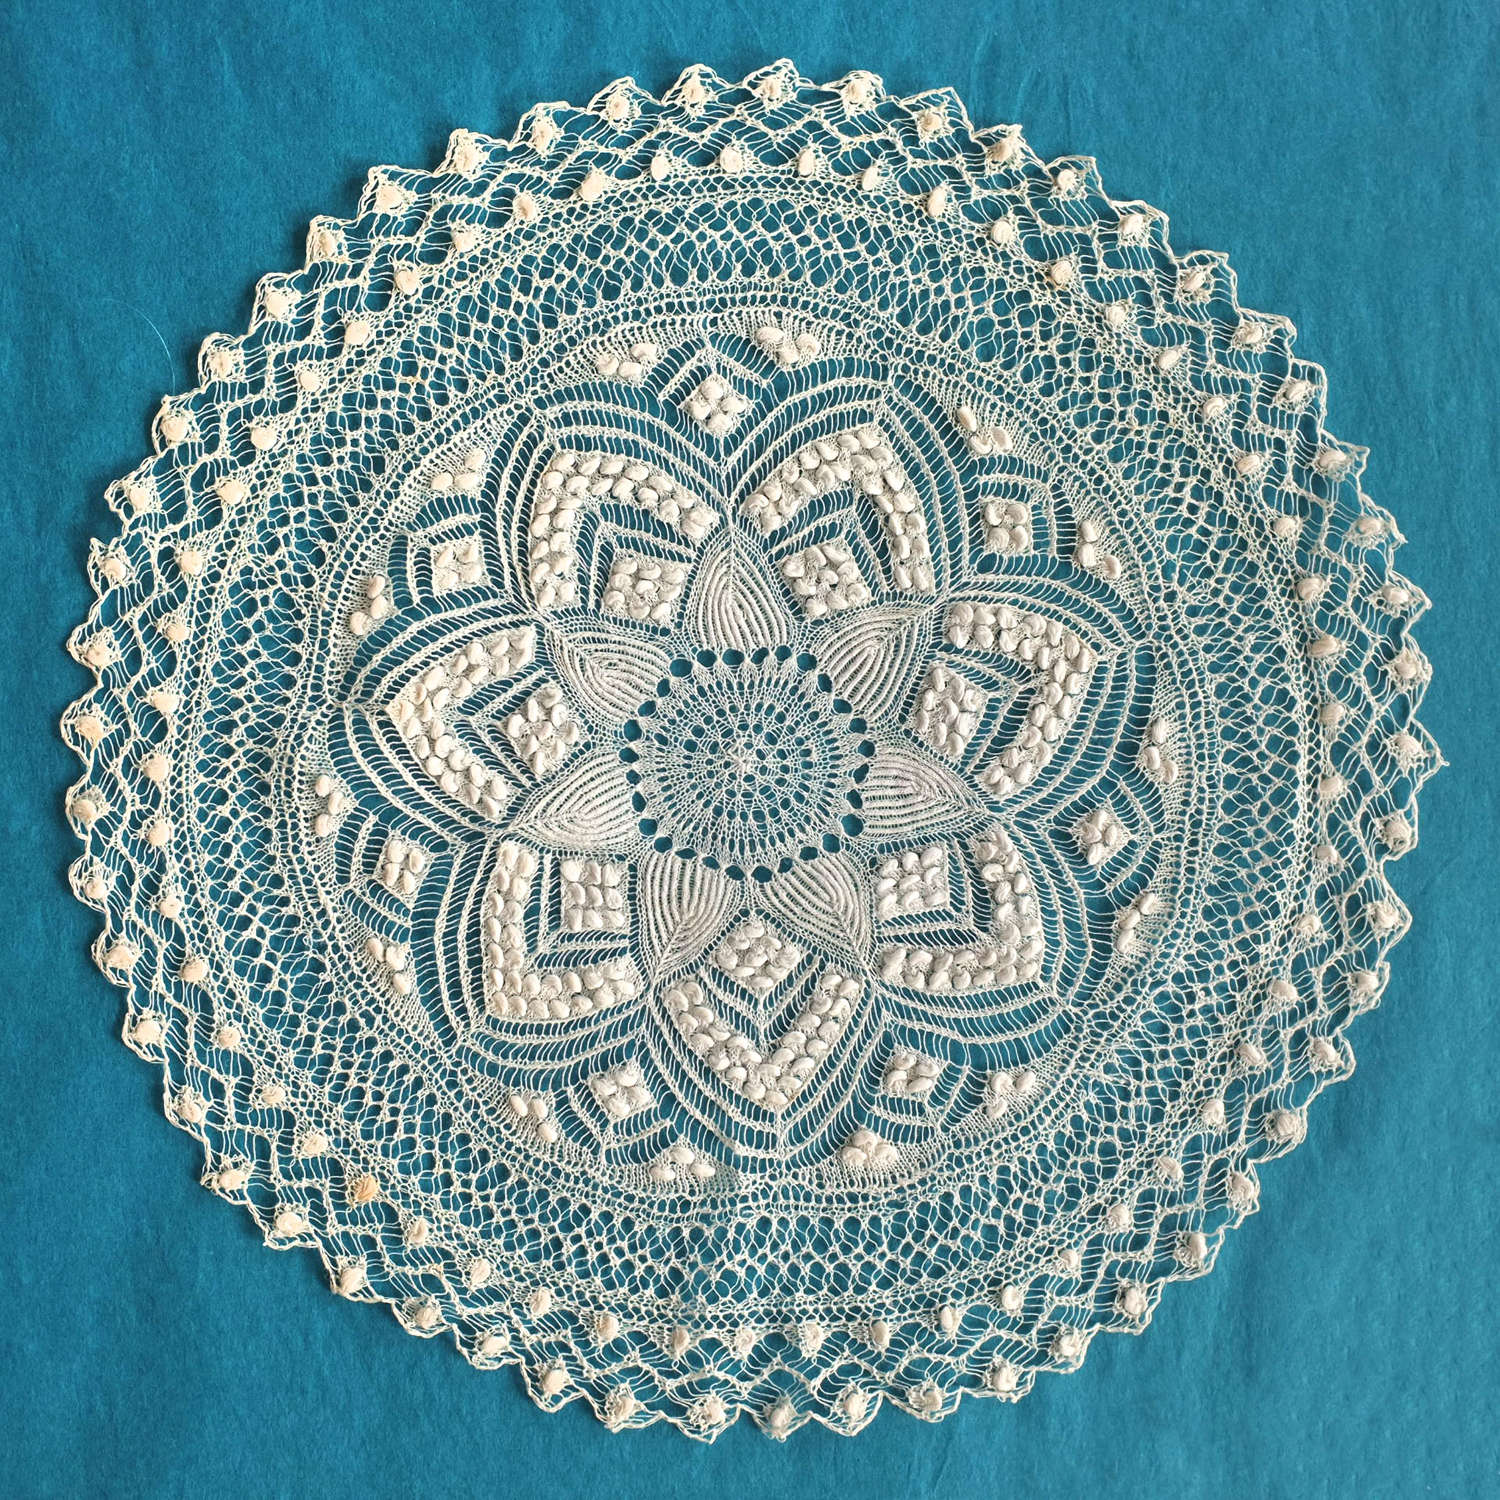 Antique Early 19th Century Knitted Mat - Margaret Simeon Collection